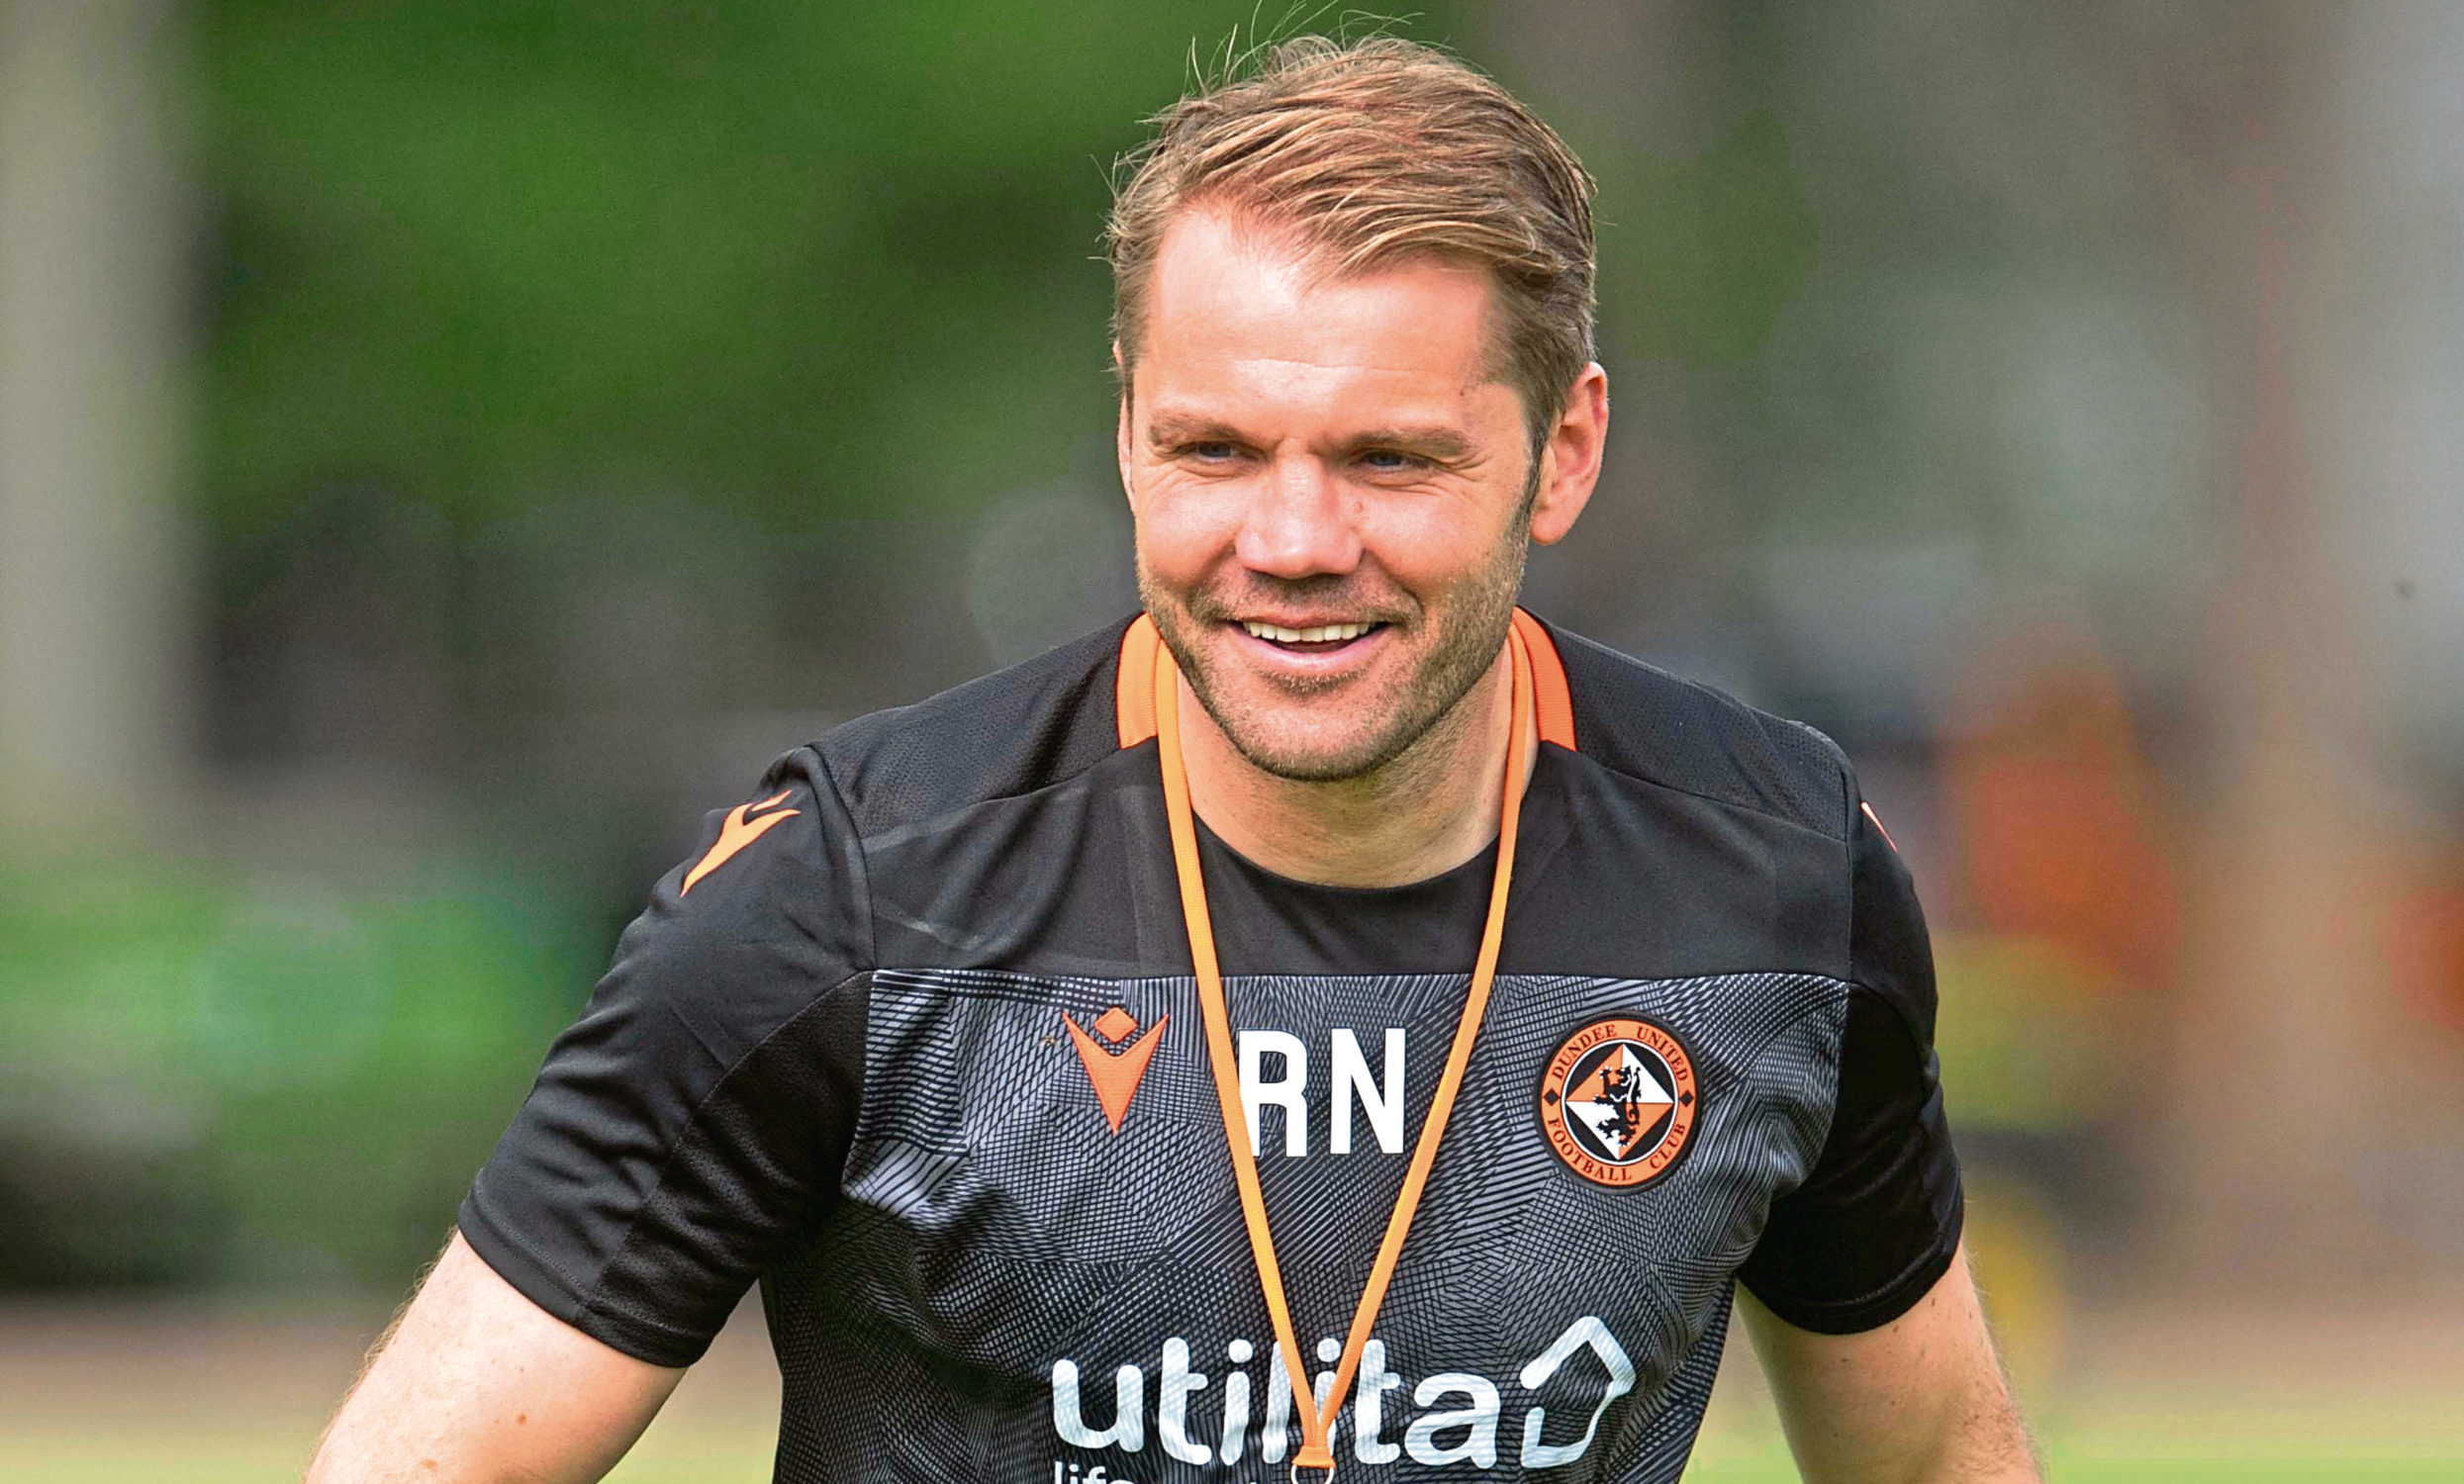 United manager Robbie Neilson.